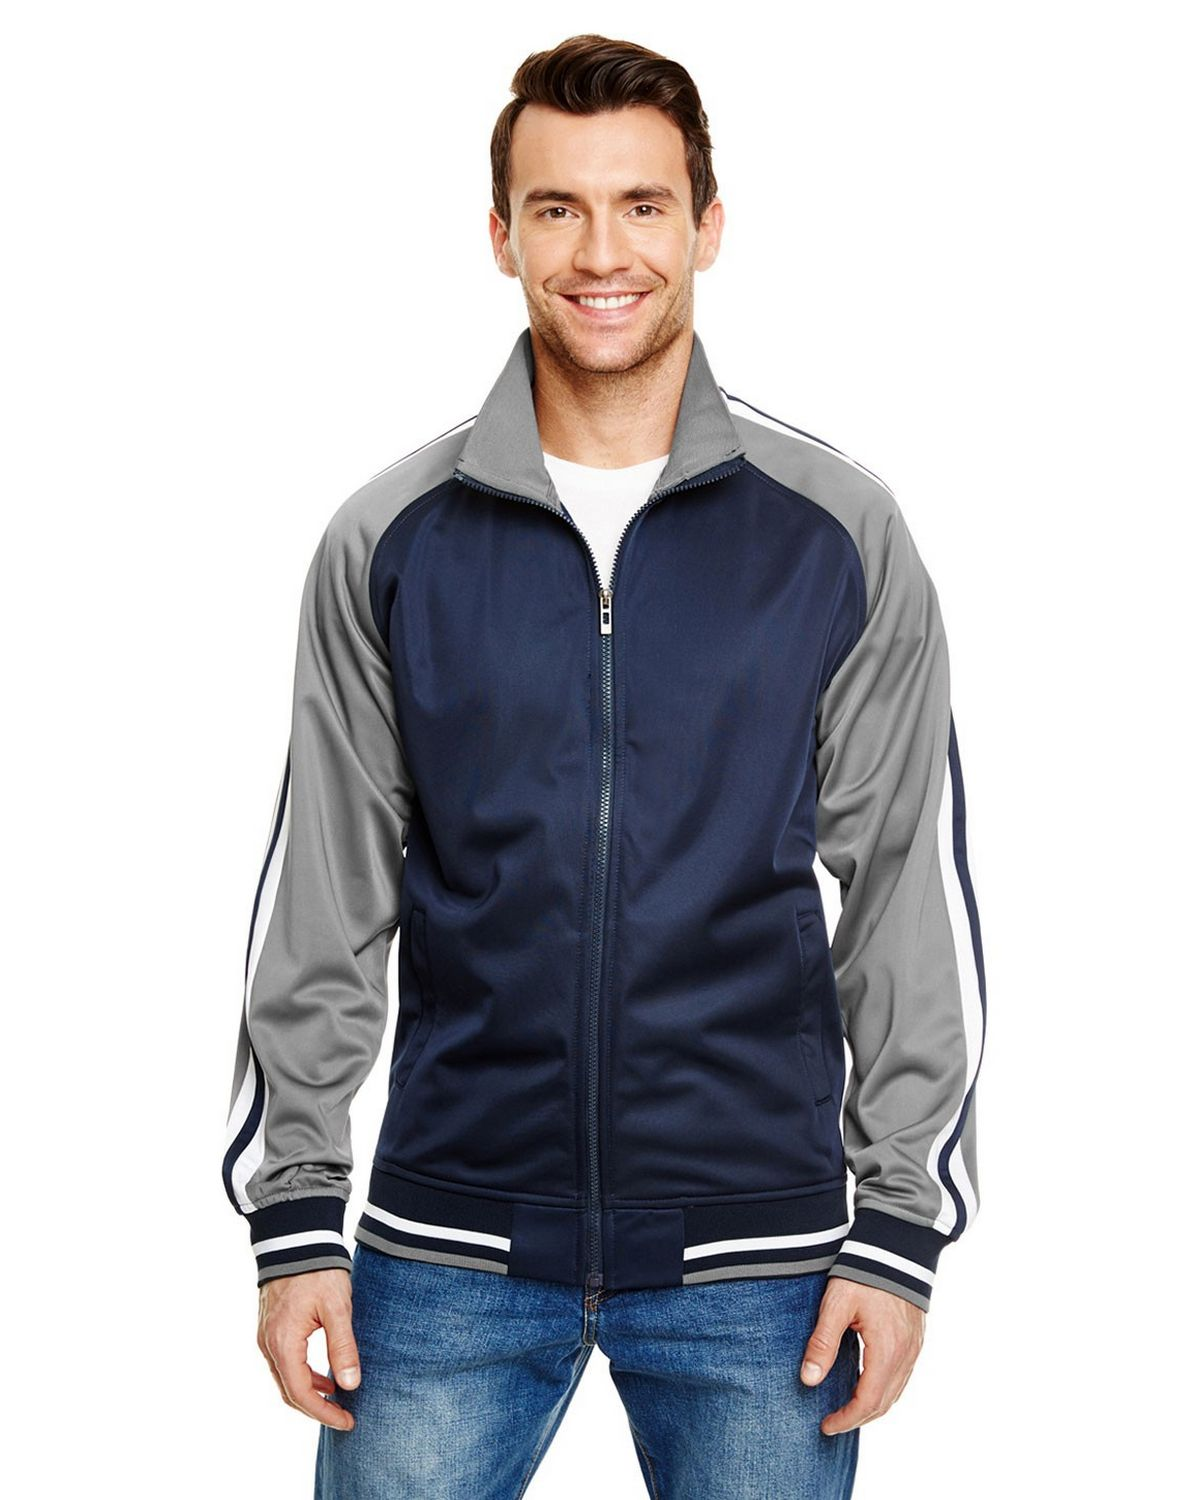 Burnside B8653 Adult Varsity Track Jacket